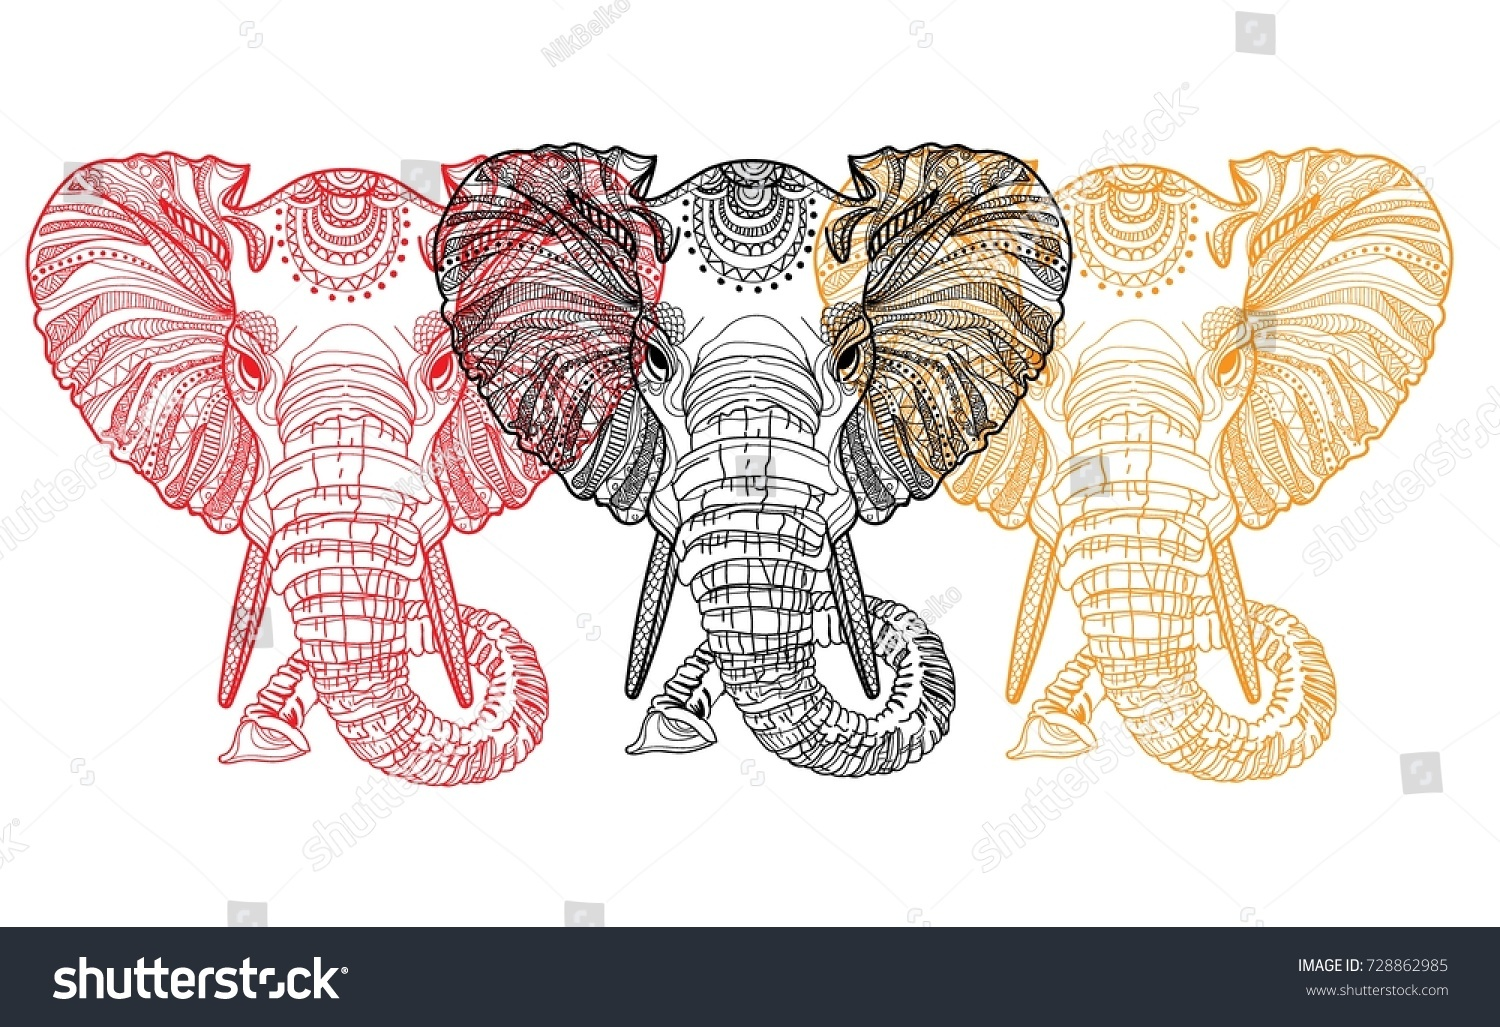 The Head Of An Elephant Meditation Coloring Mandala Large Horns And